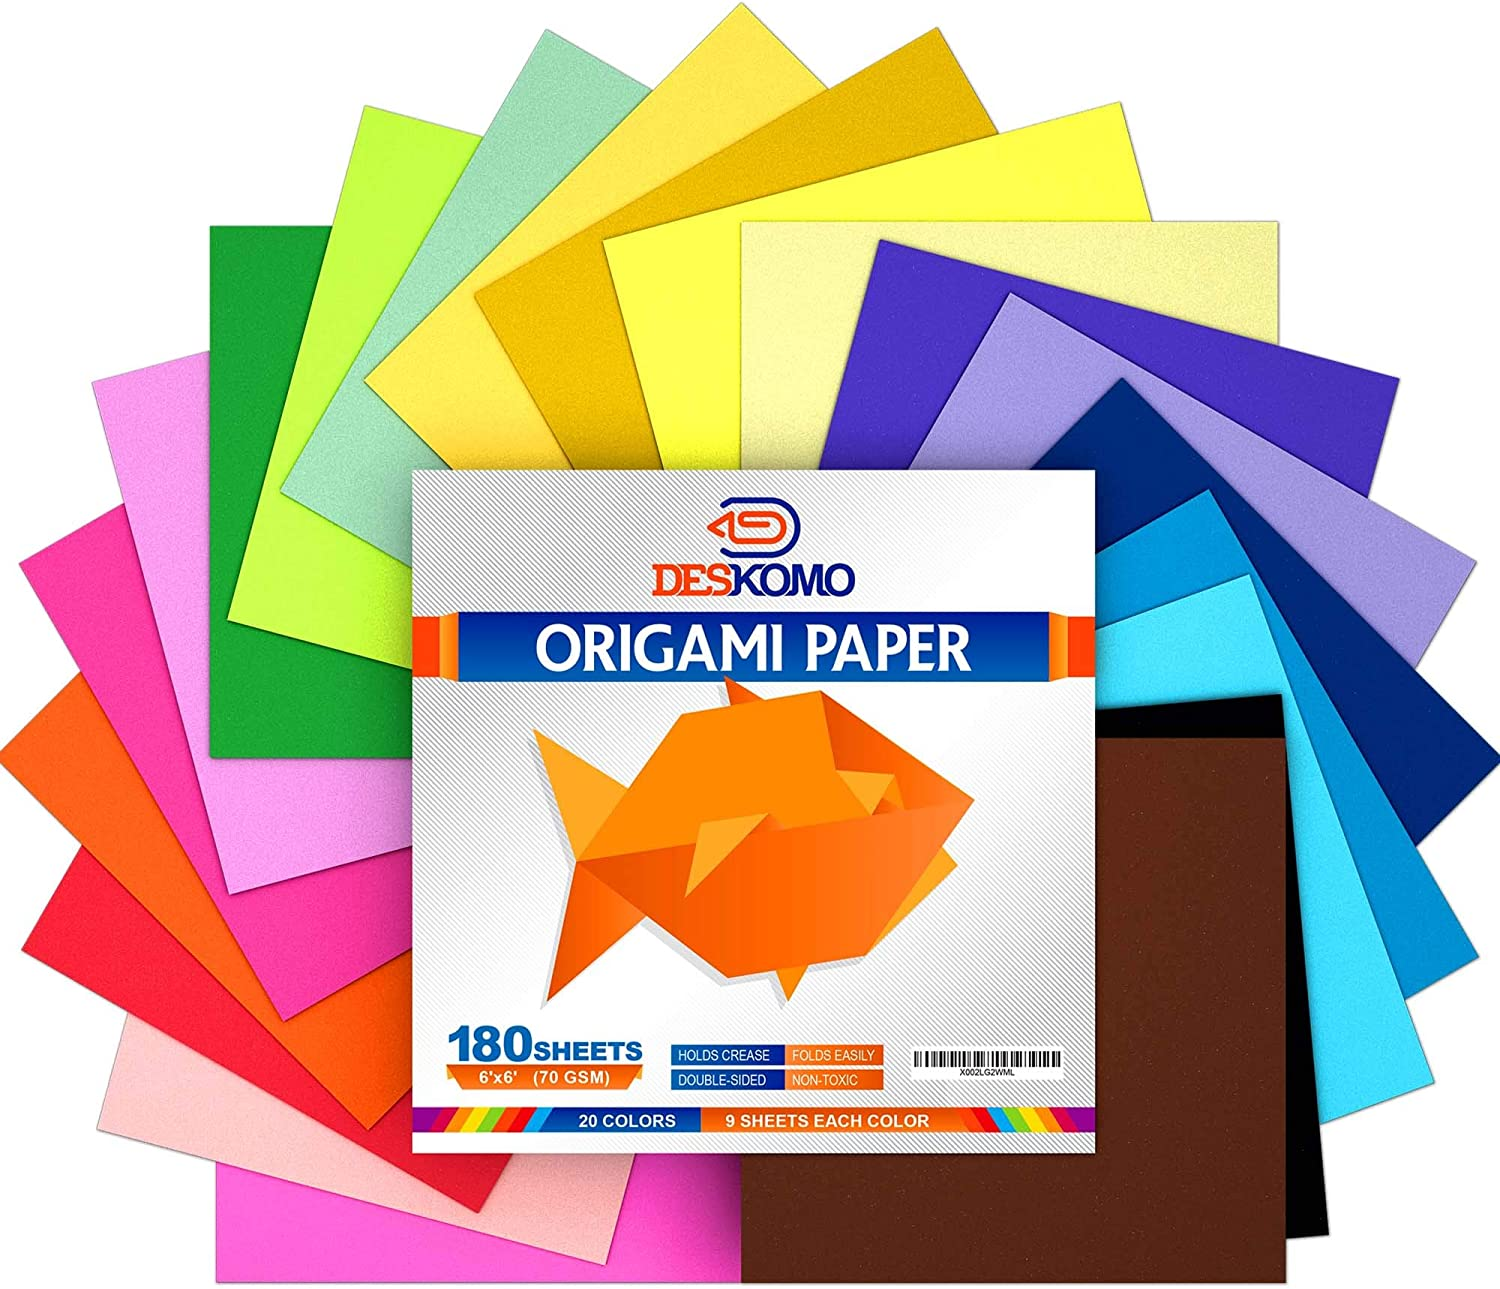 Deskomo Origami Paper for Kids Double Overseas parallel import regular item 180 Sided Pack Daily bargain sale Sheets of -